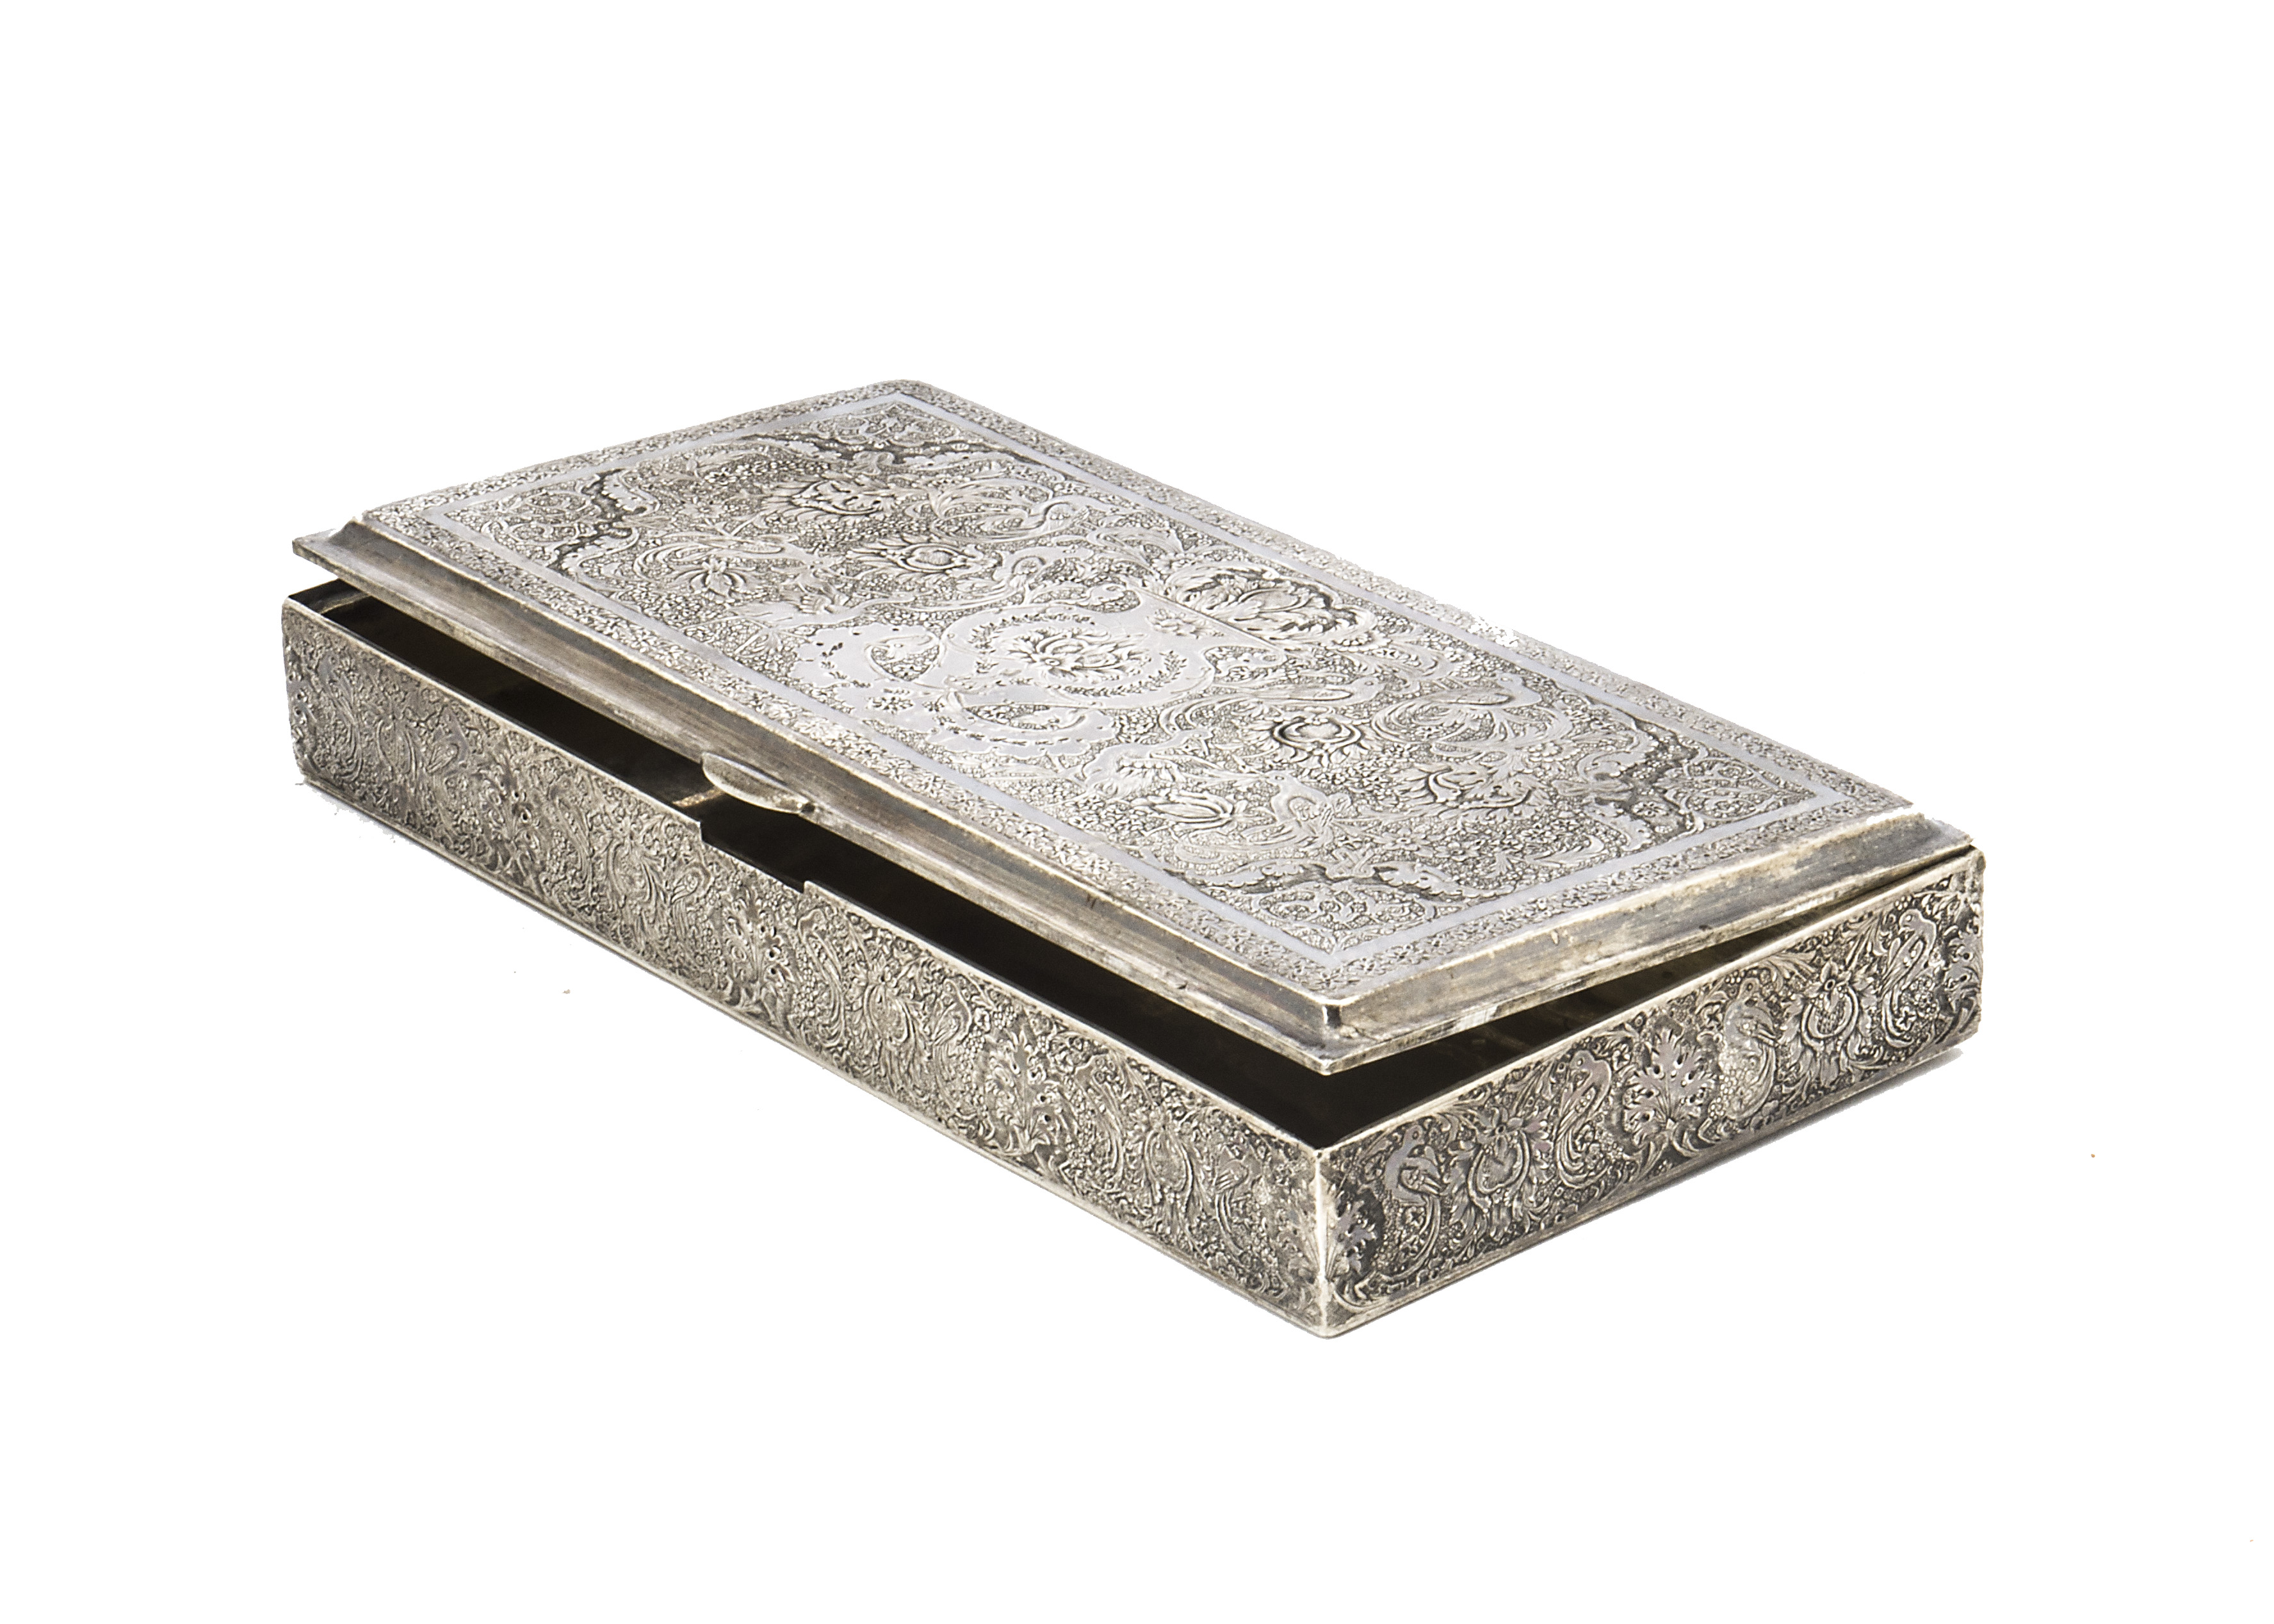 Lot 45 - A vintage Persian silver box, rectangular having ornate engraved designs to lid and sides, 16cm